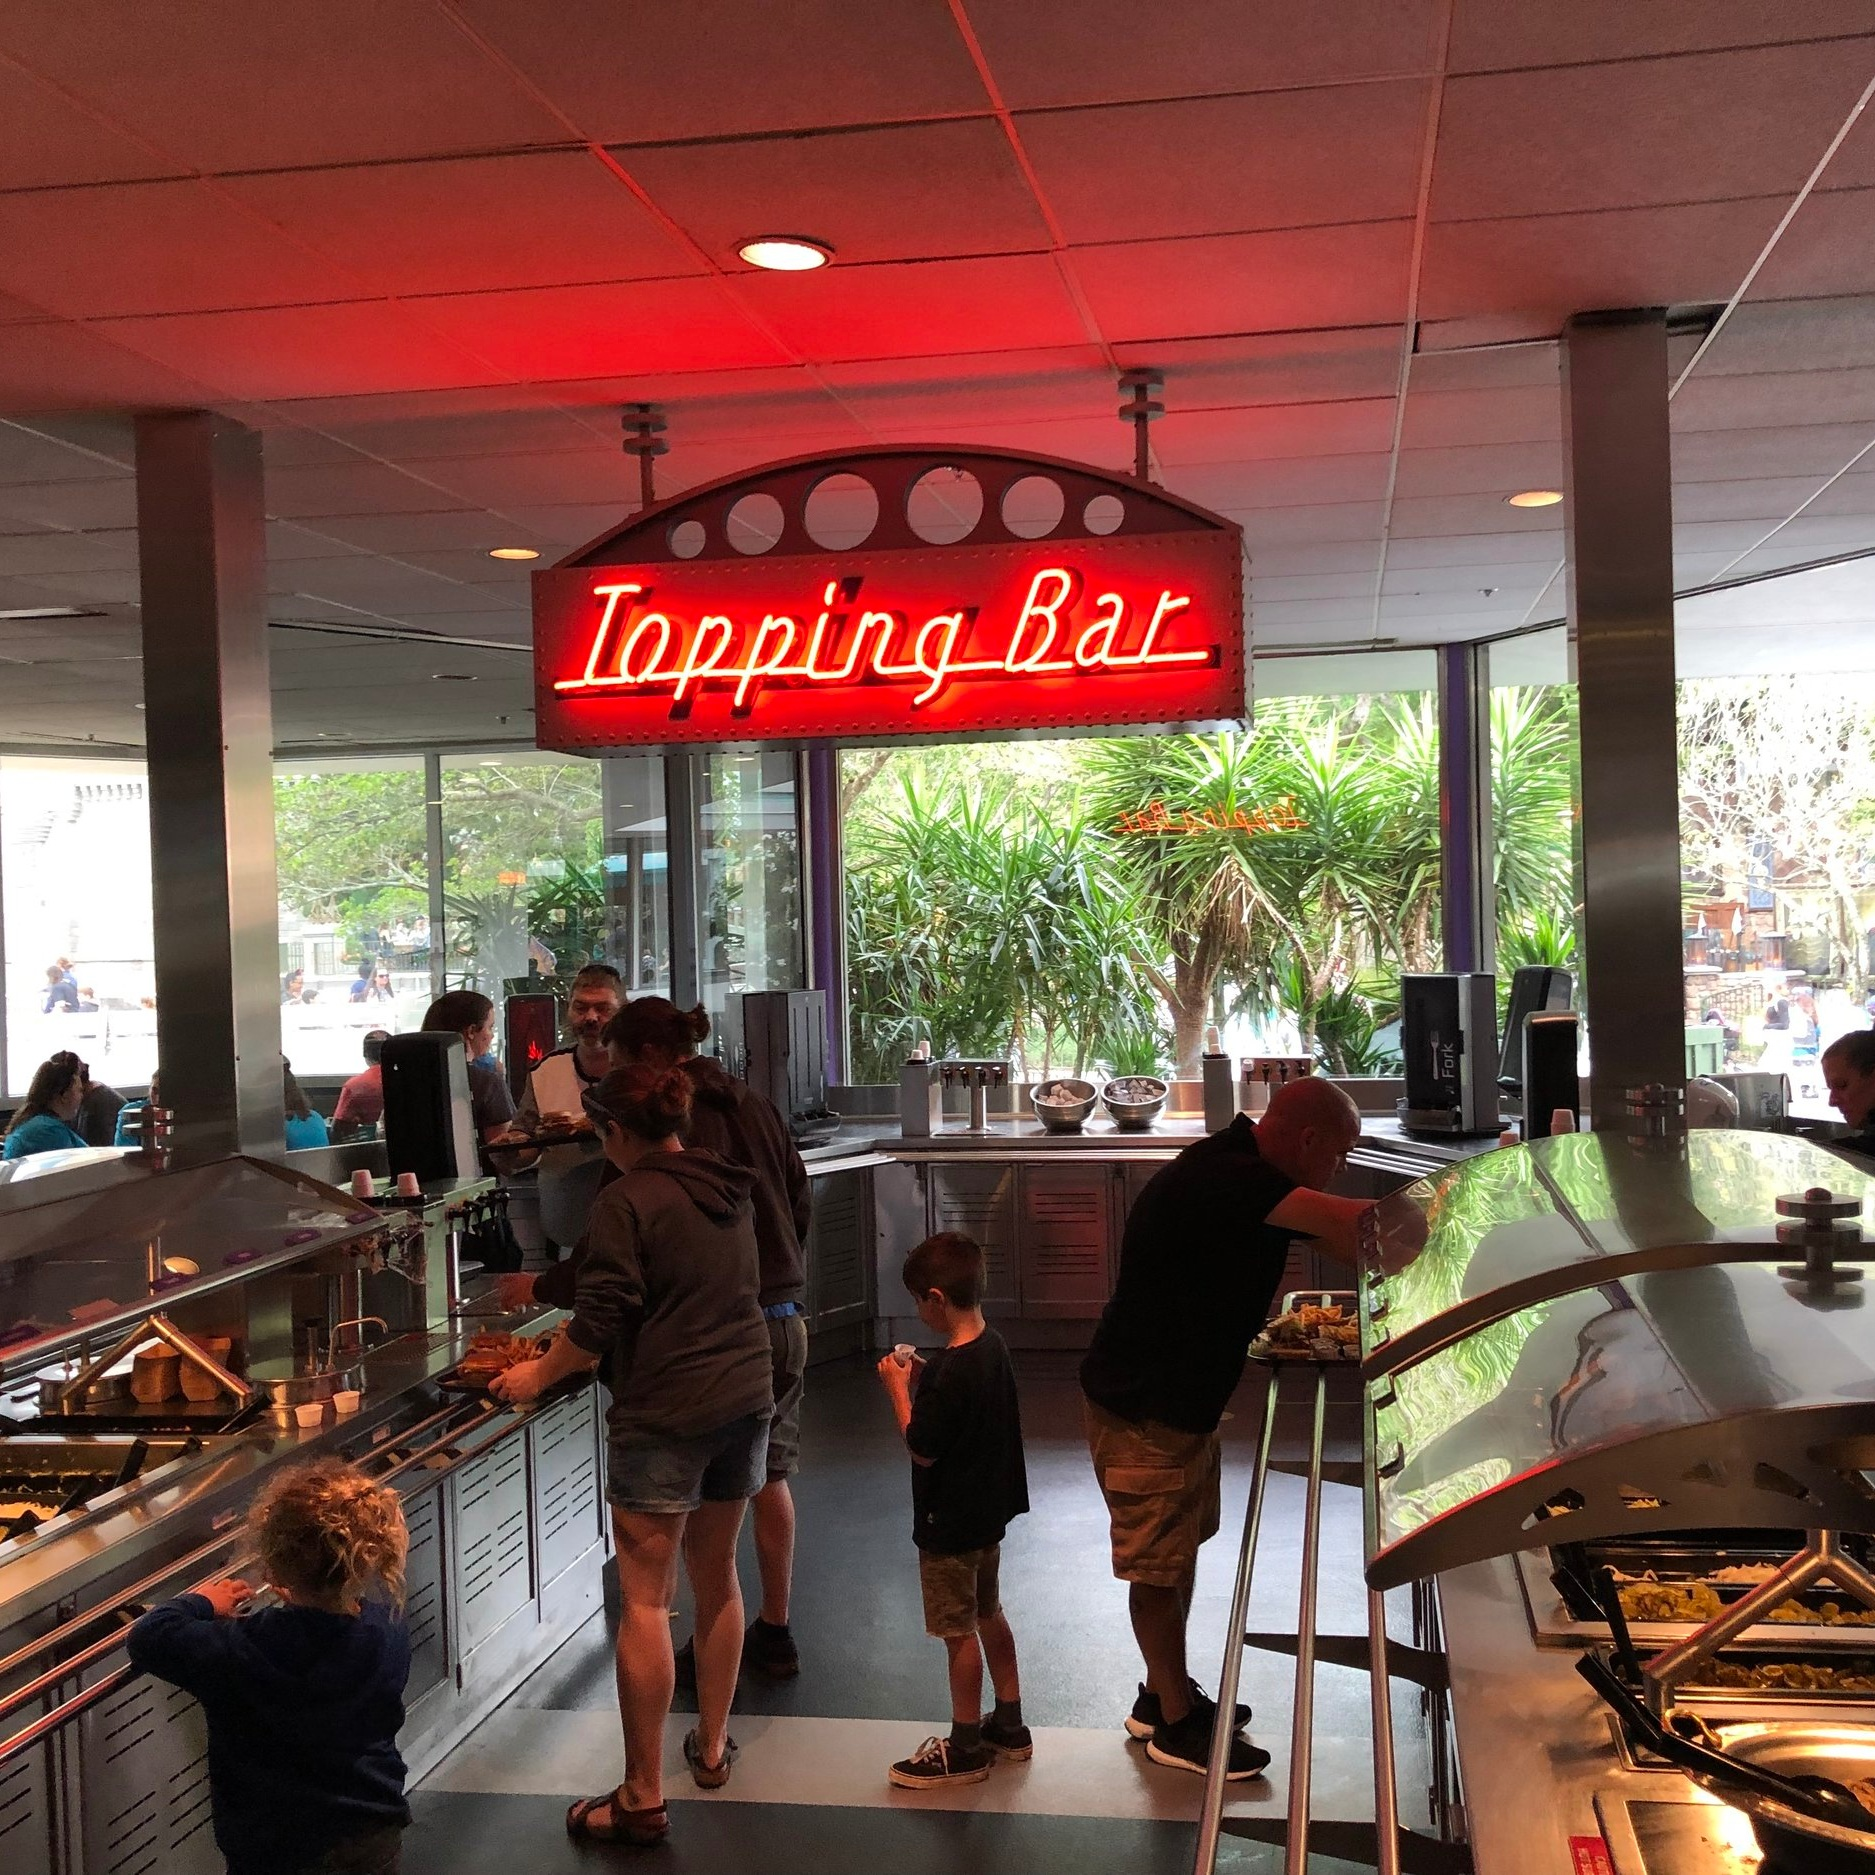 Topping Bar at Cosmic Ray's Cafe in Tomorrowland at Disney World